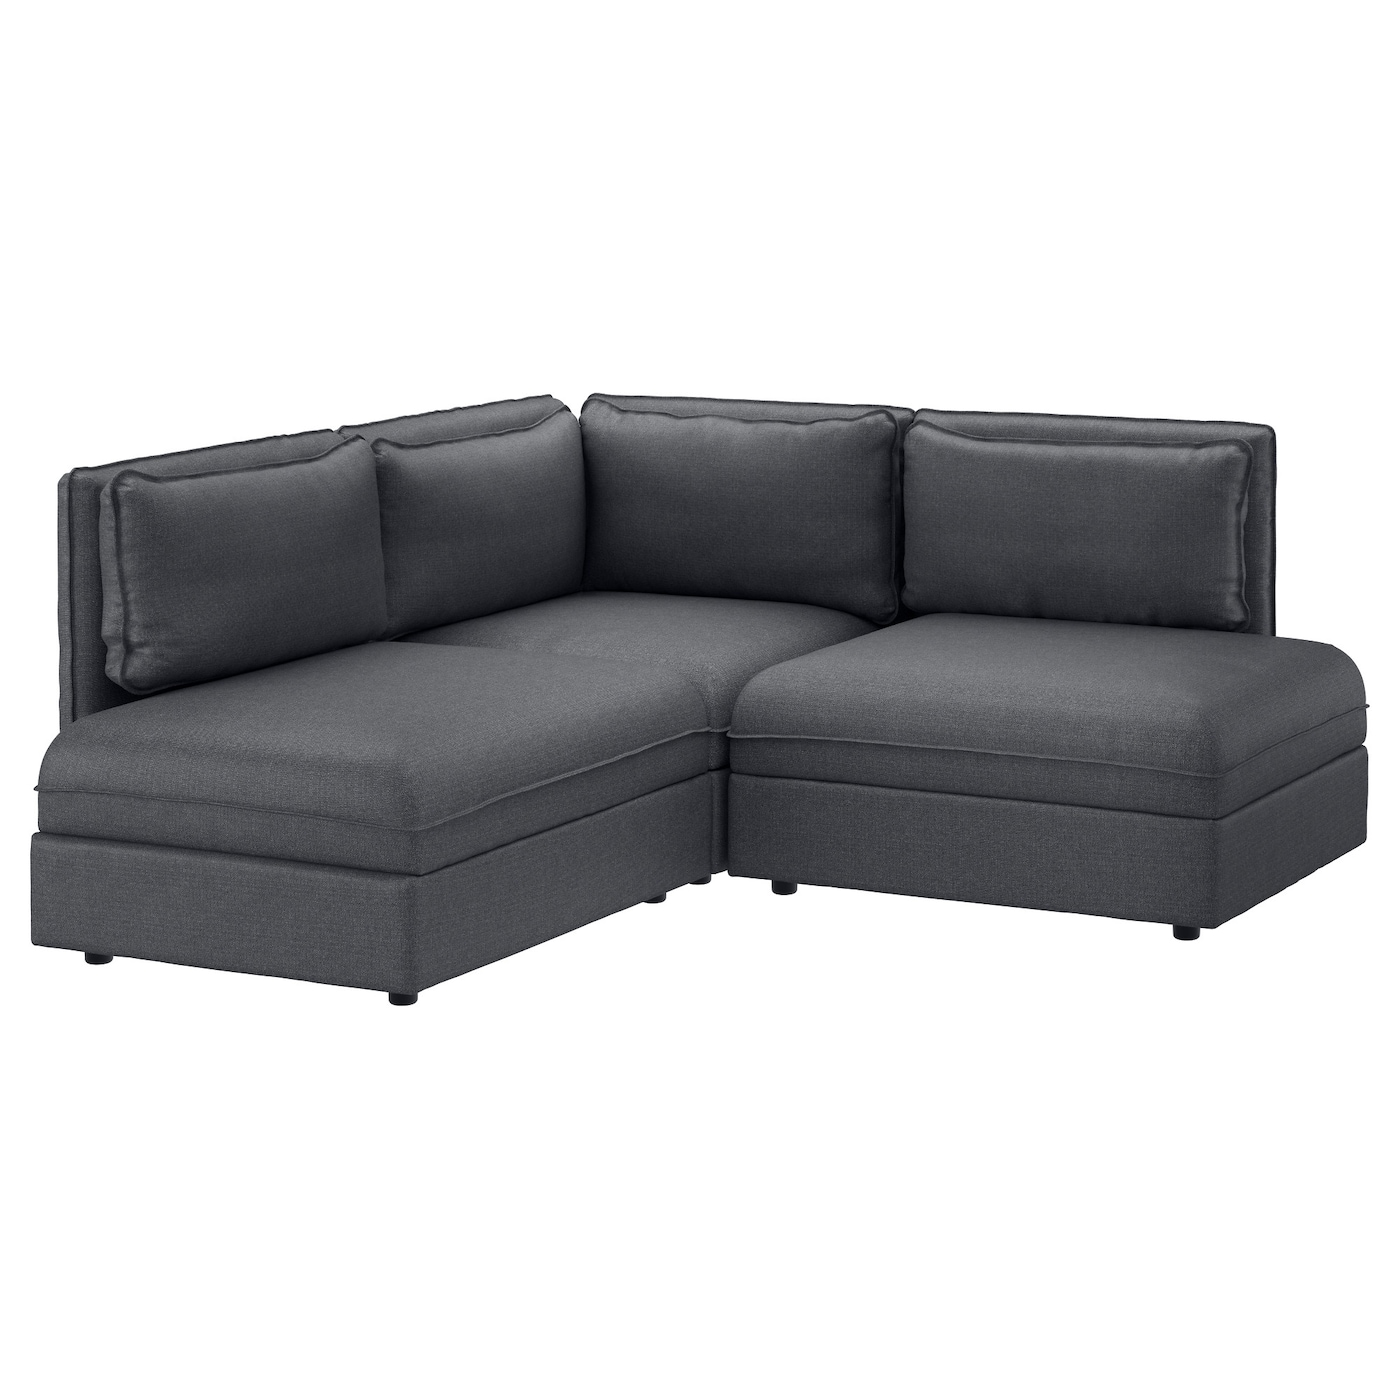 Vallentuna 3 seat corner sofa hillared dark grey ikea for Corner loveseats